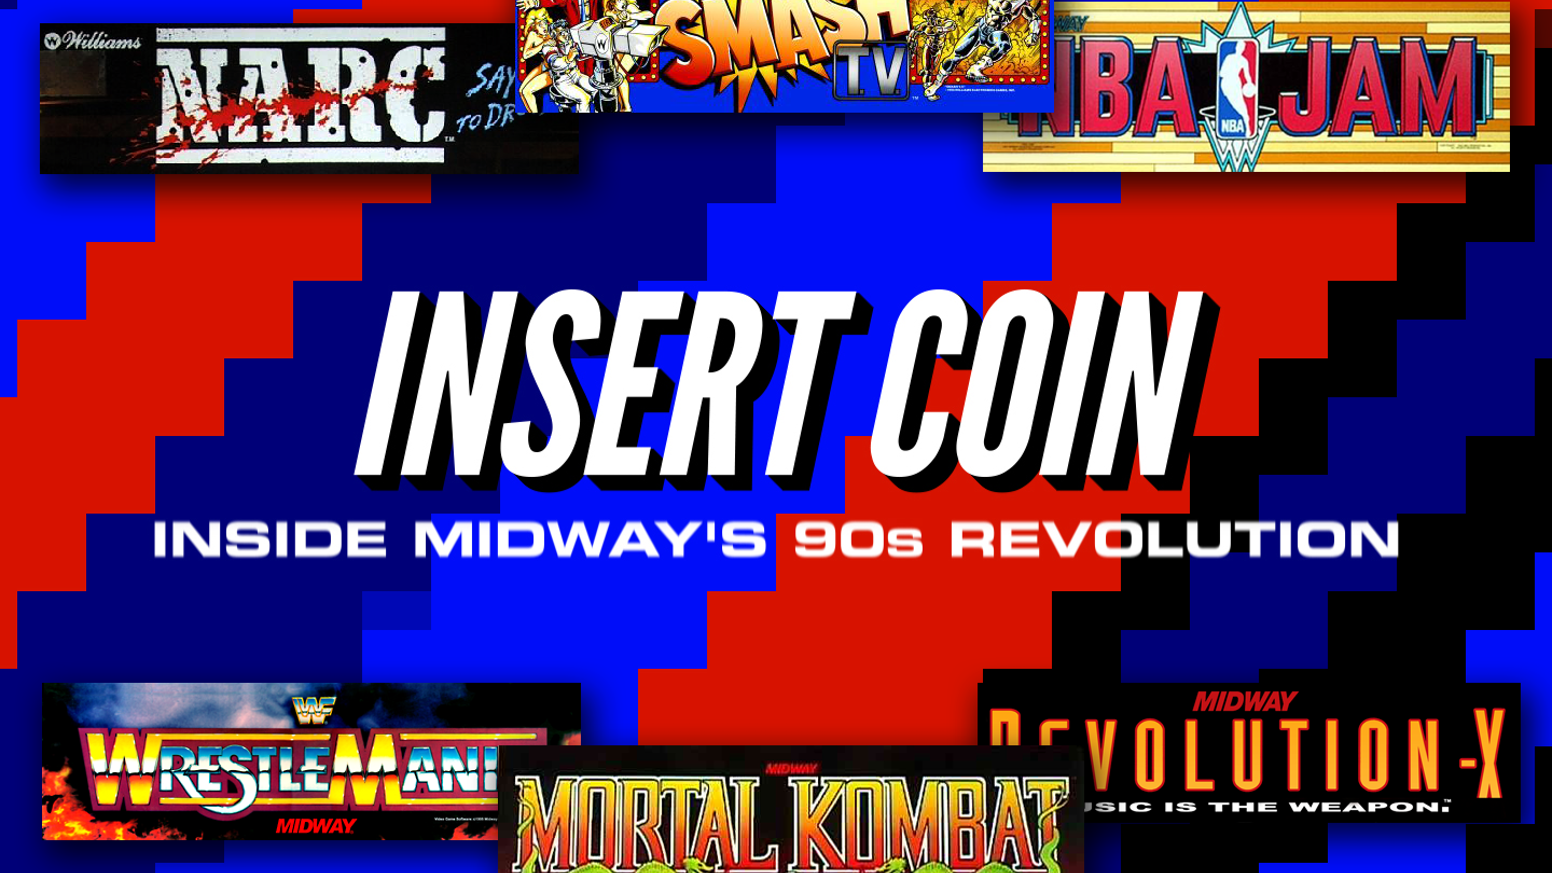 FUNDED! From Mortal Kombat to NBA Jam to Cruis'n USA, this is the untold history of the greatest videogame studio of the 90's.